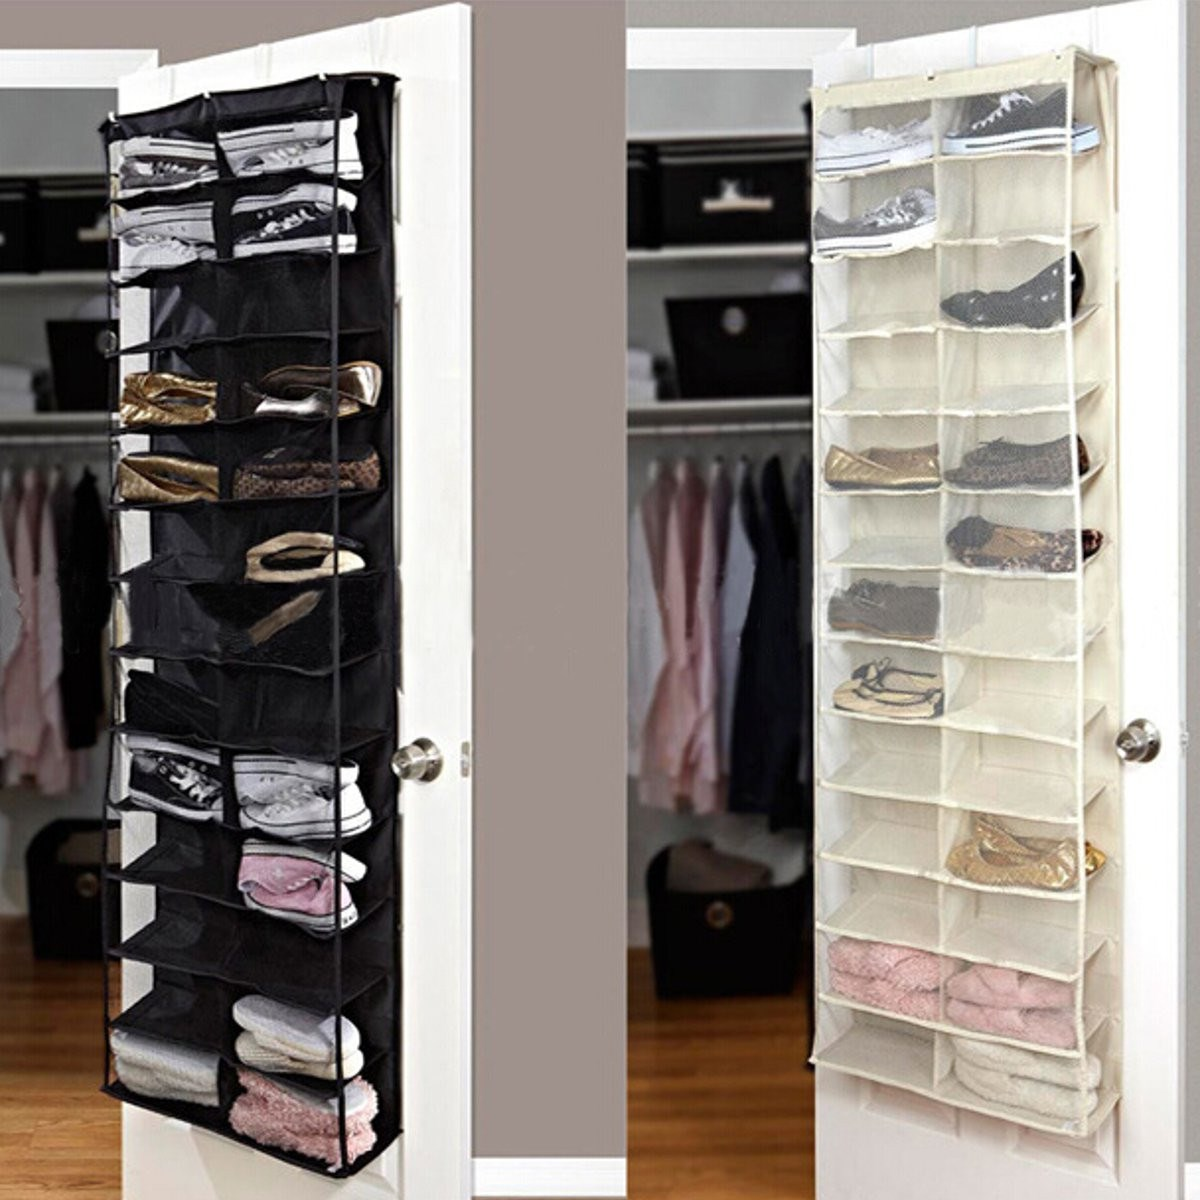 Shoe Rack Door Wall Hanging Shelf Bag Shoes Stand Holder Home Living Room Storage Organizer 26